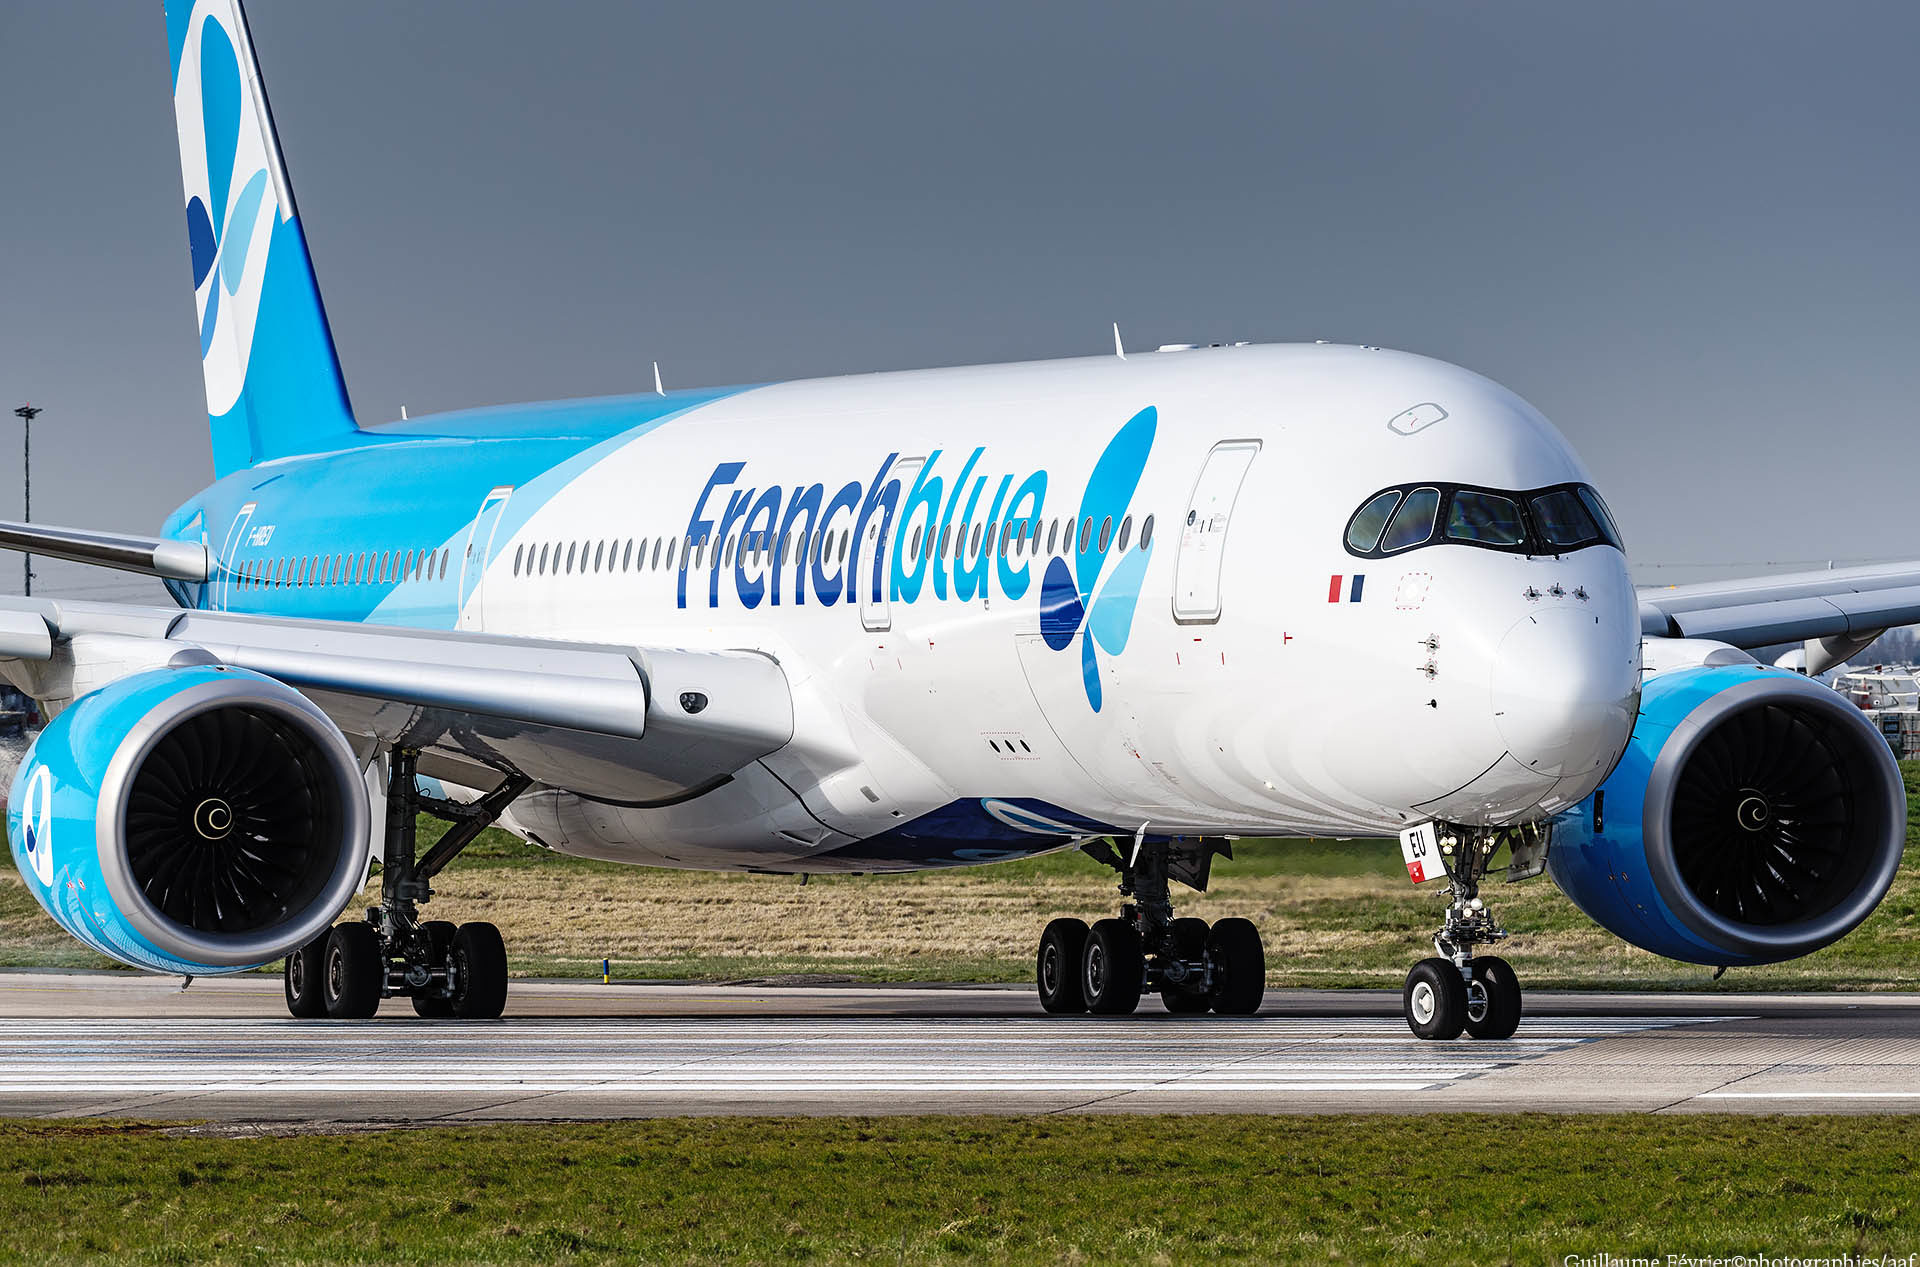 Le F-HREU, une photo bientôt collector. Cet A350 (le MSN5) aux couleurs de « Frenchblue » ne va pas garder sa robe longtemps car il va passer en « French Bee » (voir l'article /// Frenchblue change de nom et devient French bee)